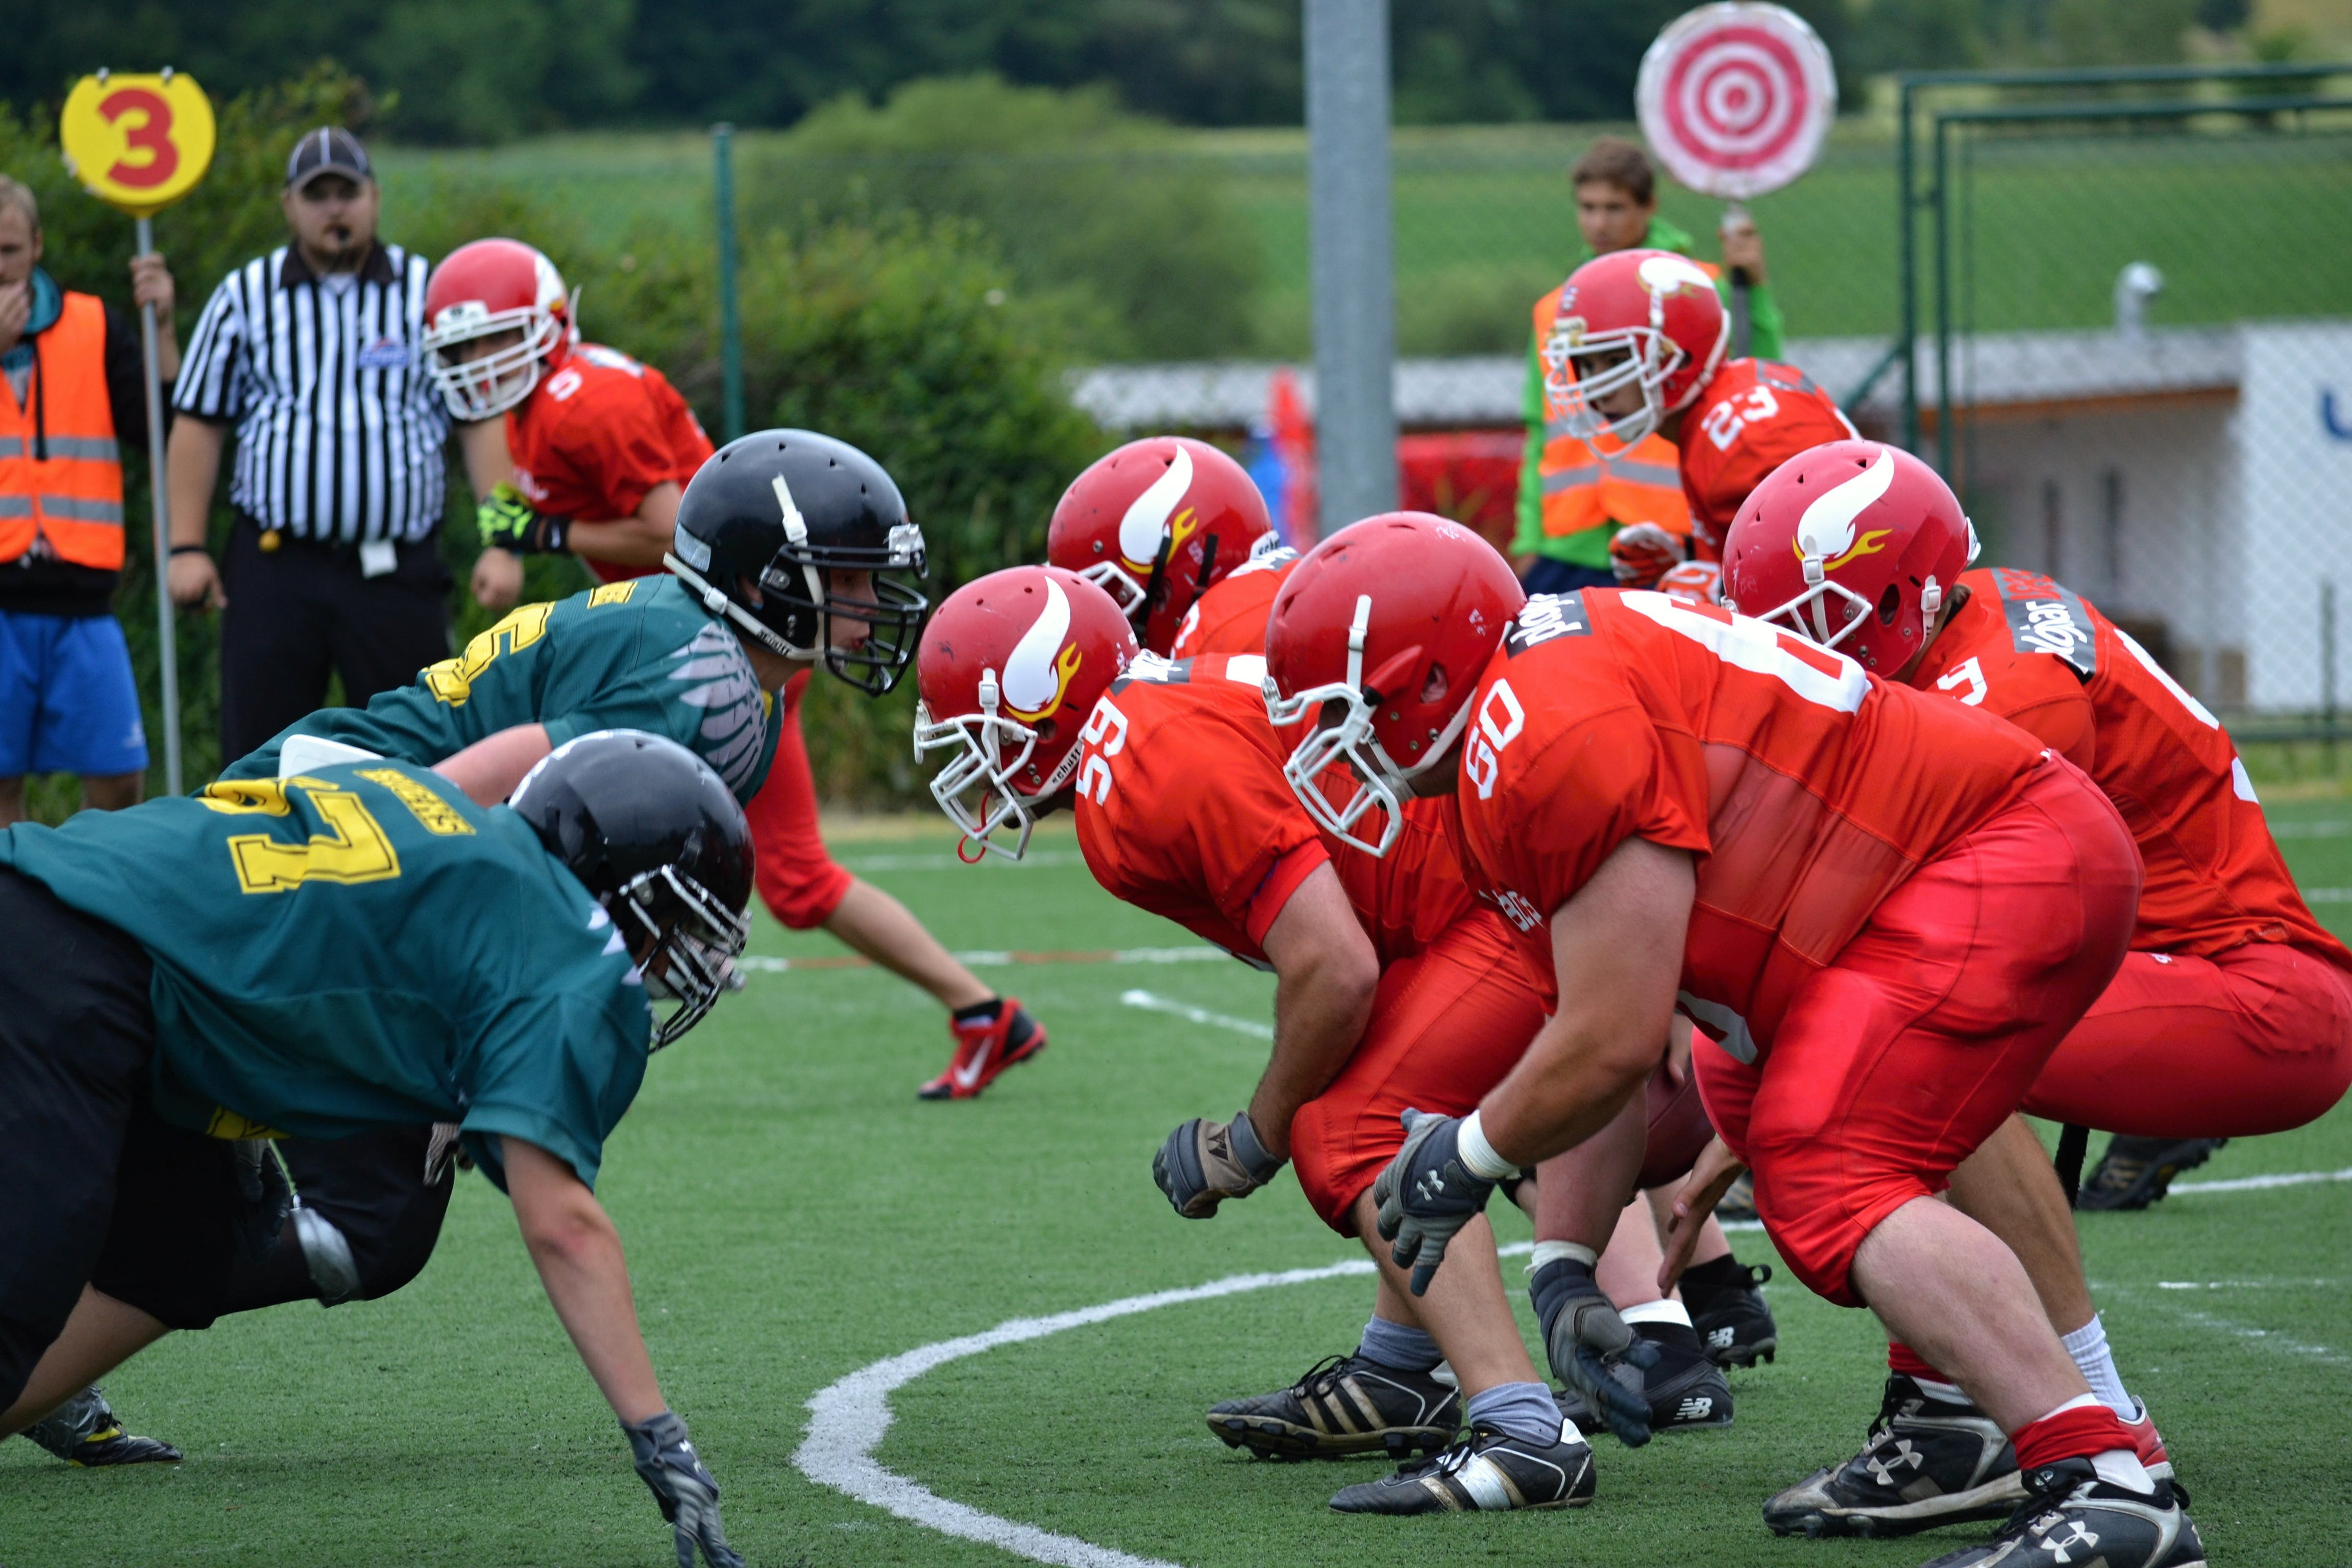 Free stock photo of field, sport, football, players